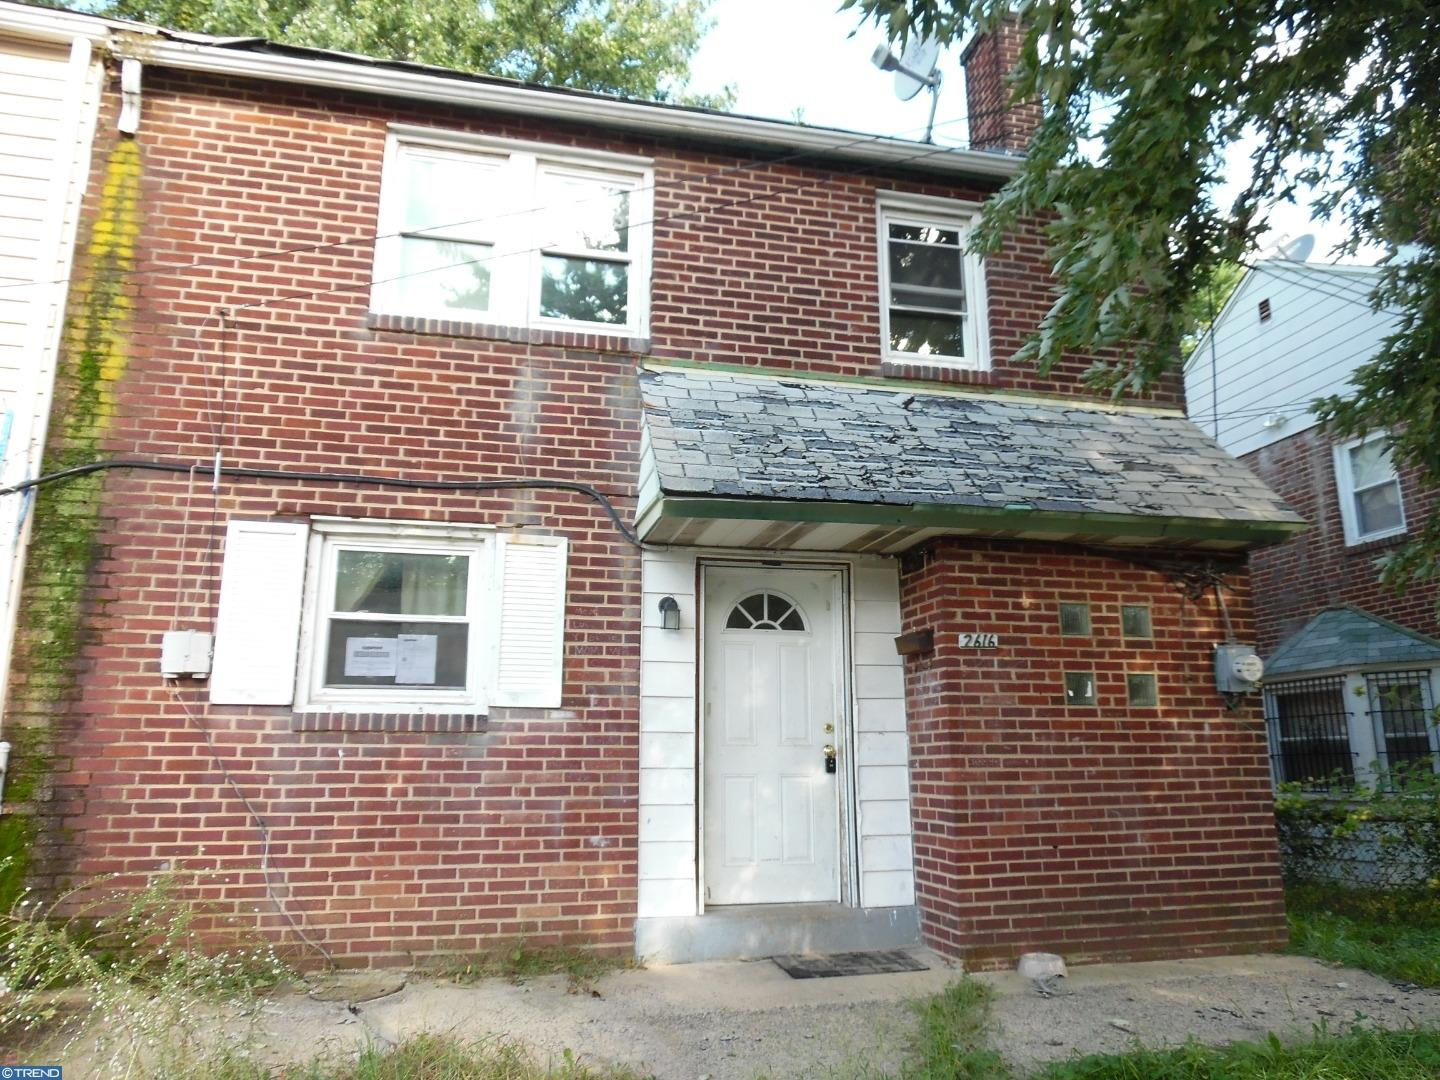 Investor Special Spacious End Unit 3 Br 1 Bath Row On A